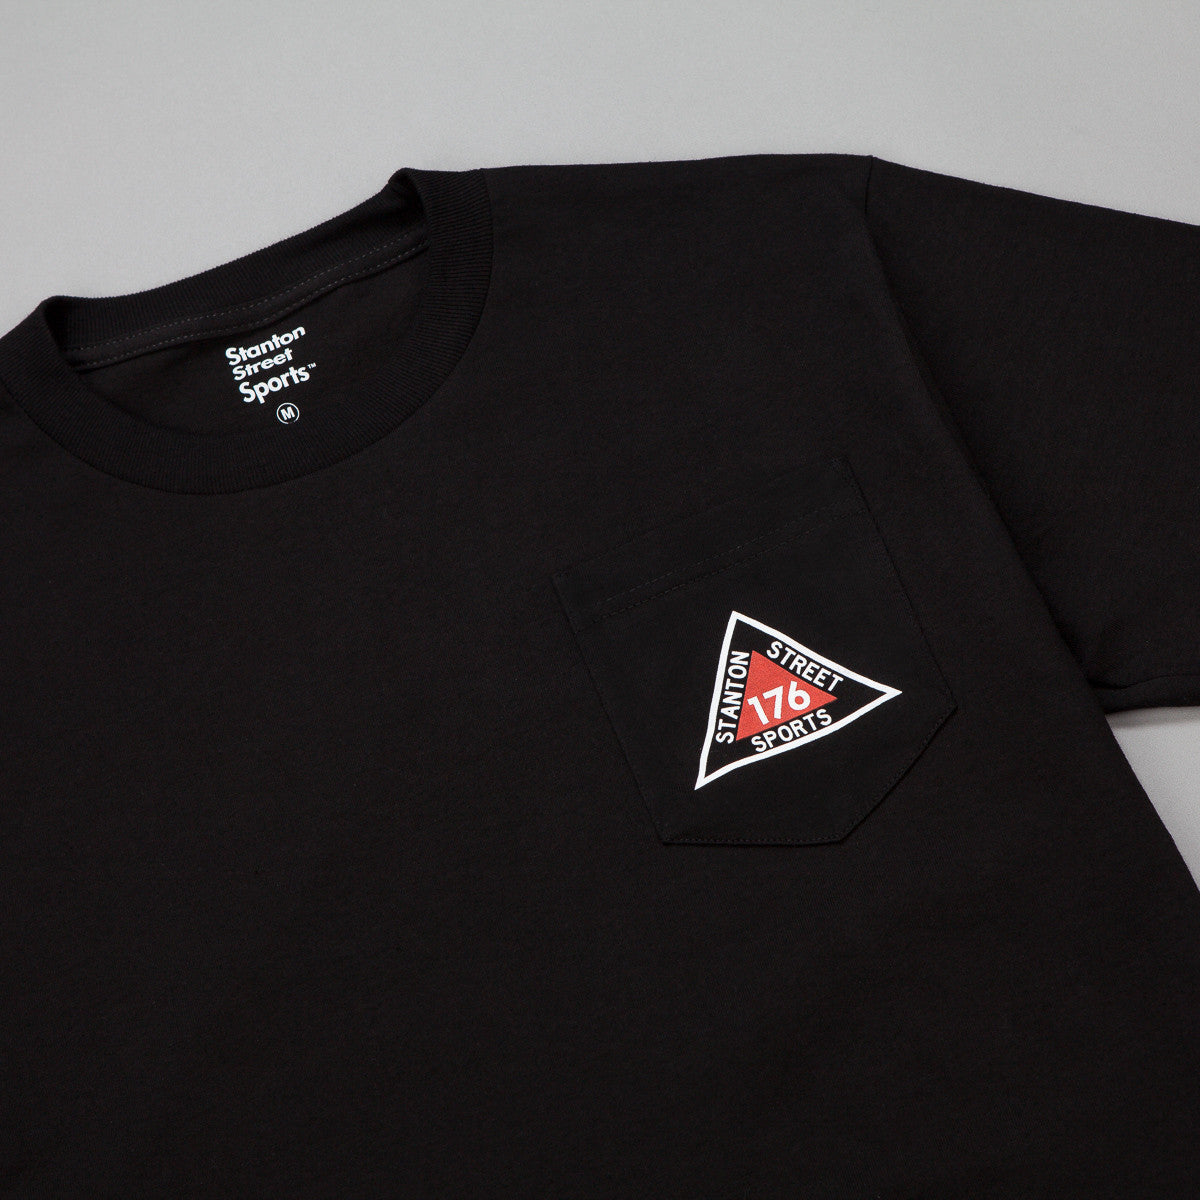 Stanton Street Sports Ridge Pocket T-Shirt - Black